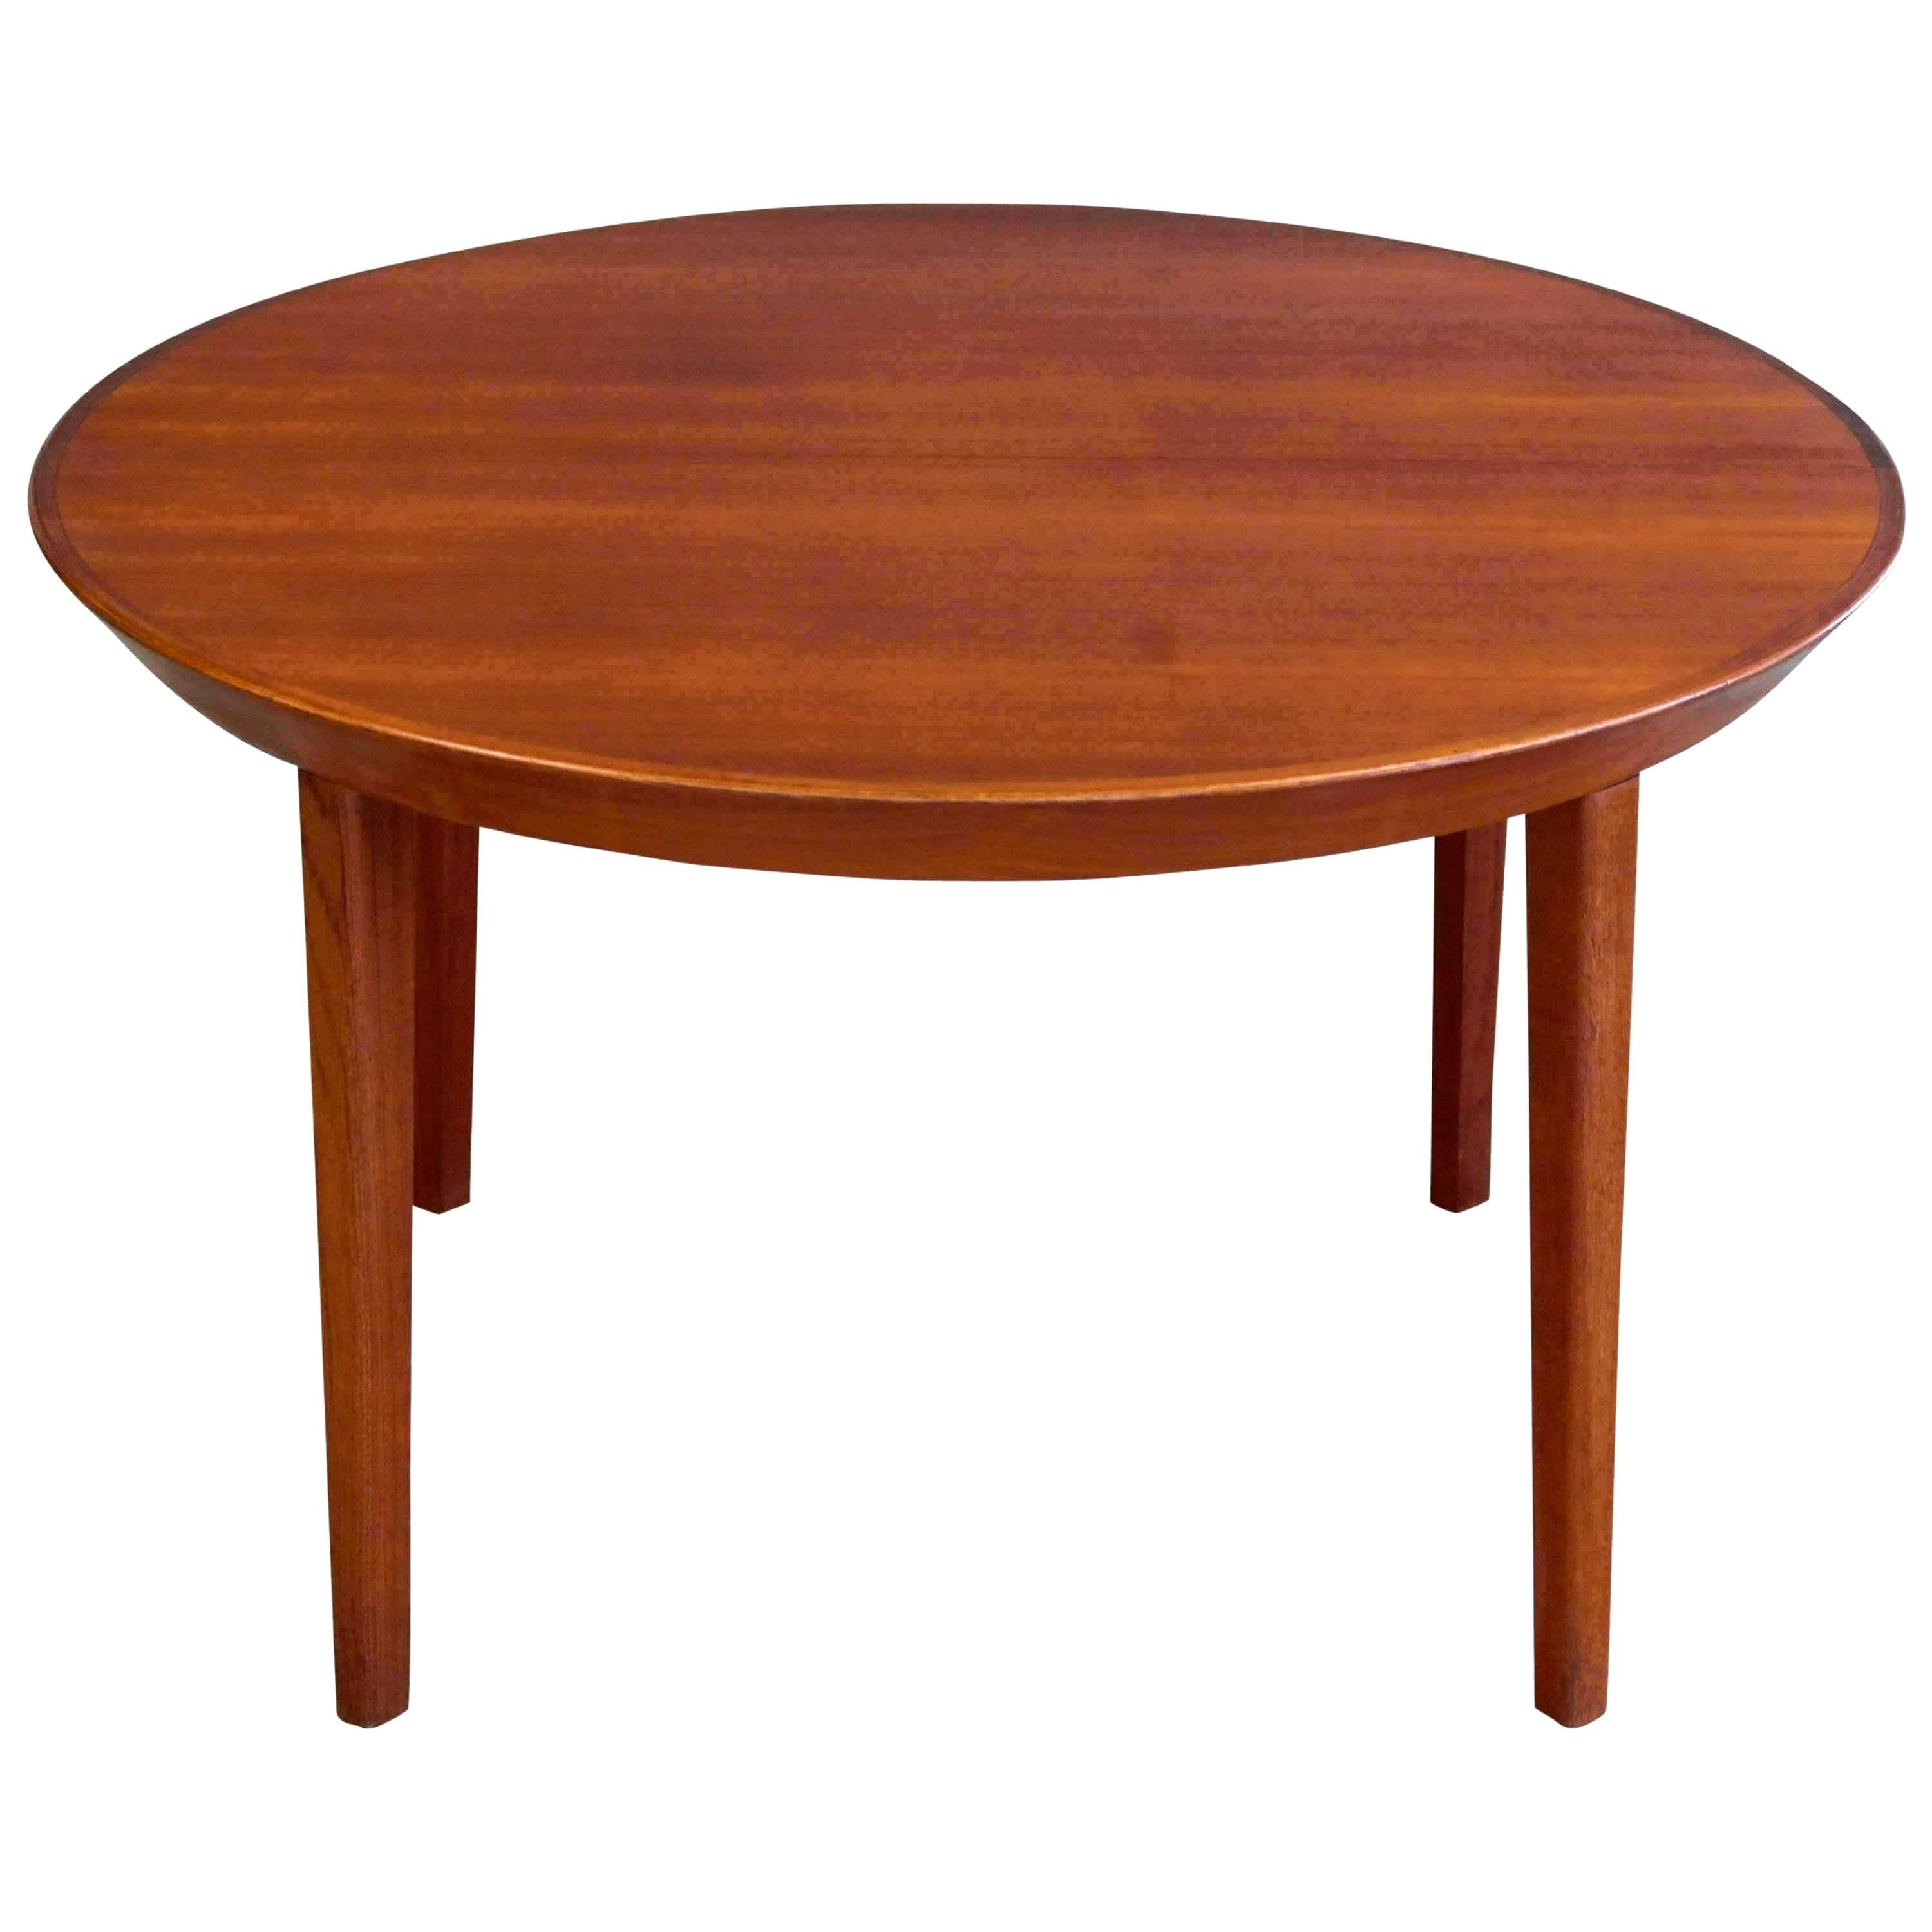 Danish Midcentury Round Extension Dining Table in Teak by Ole Hald for Gudme